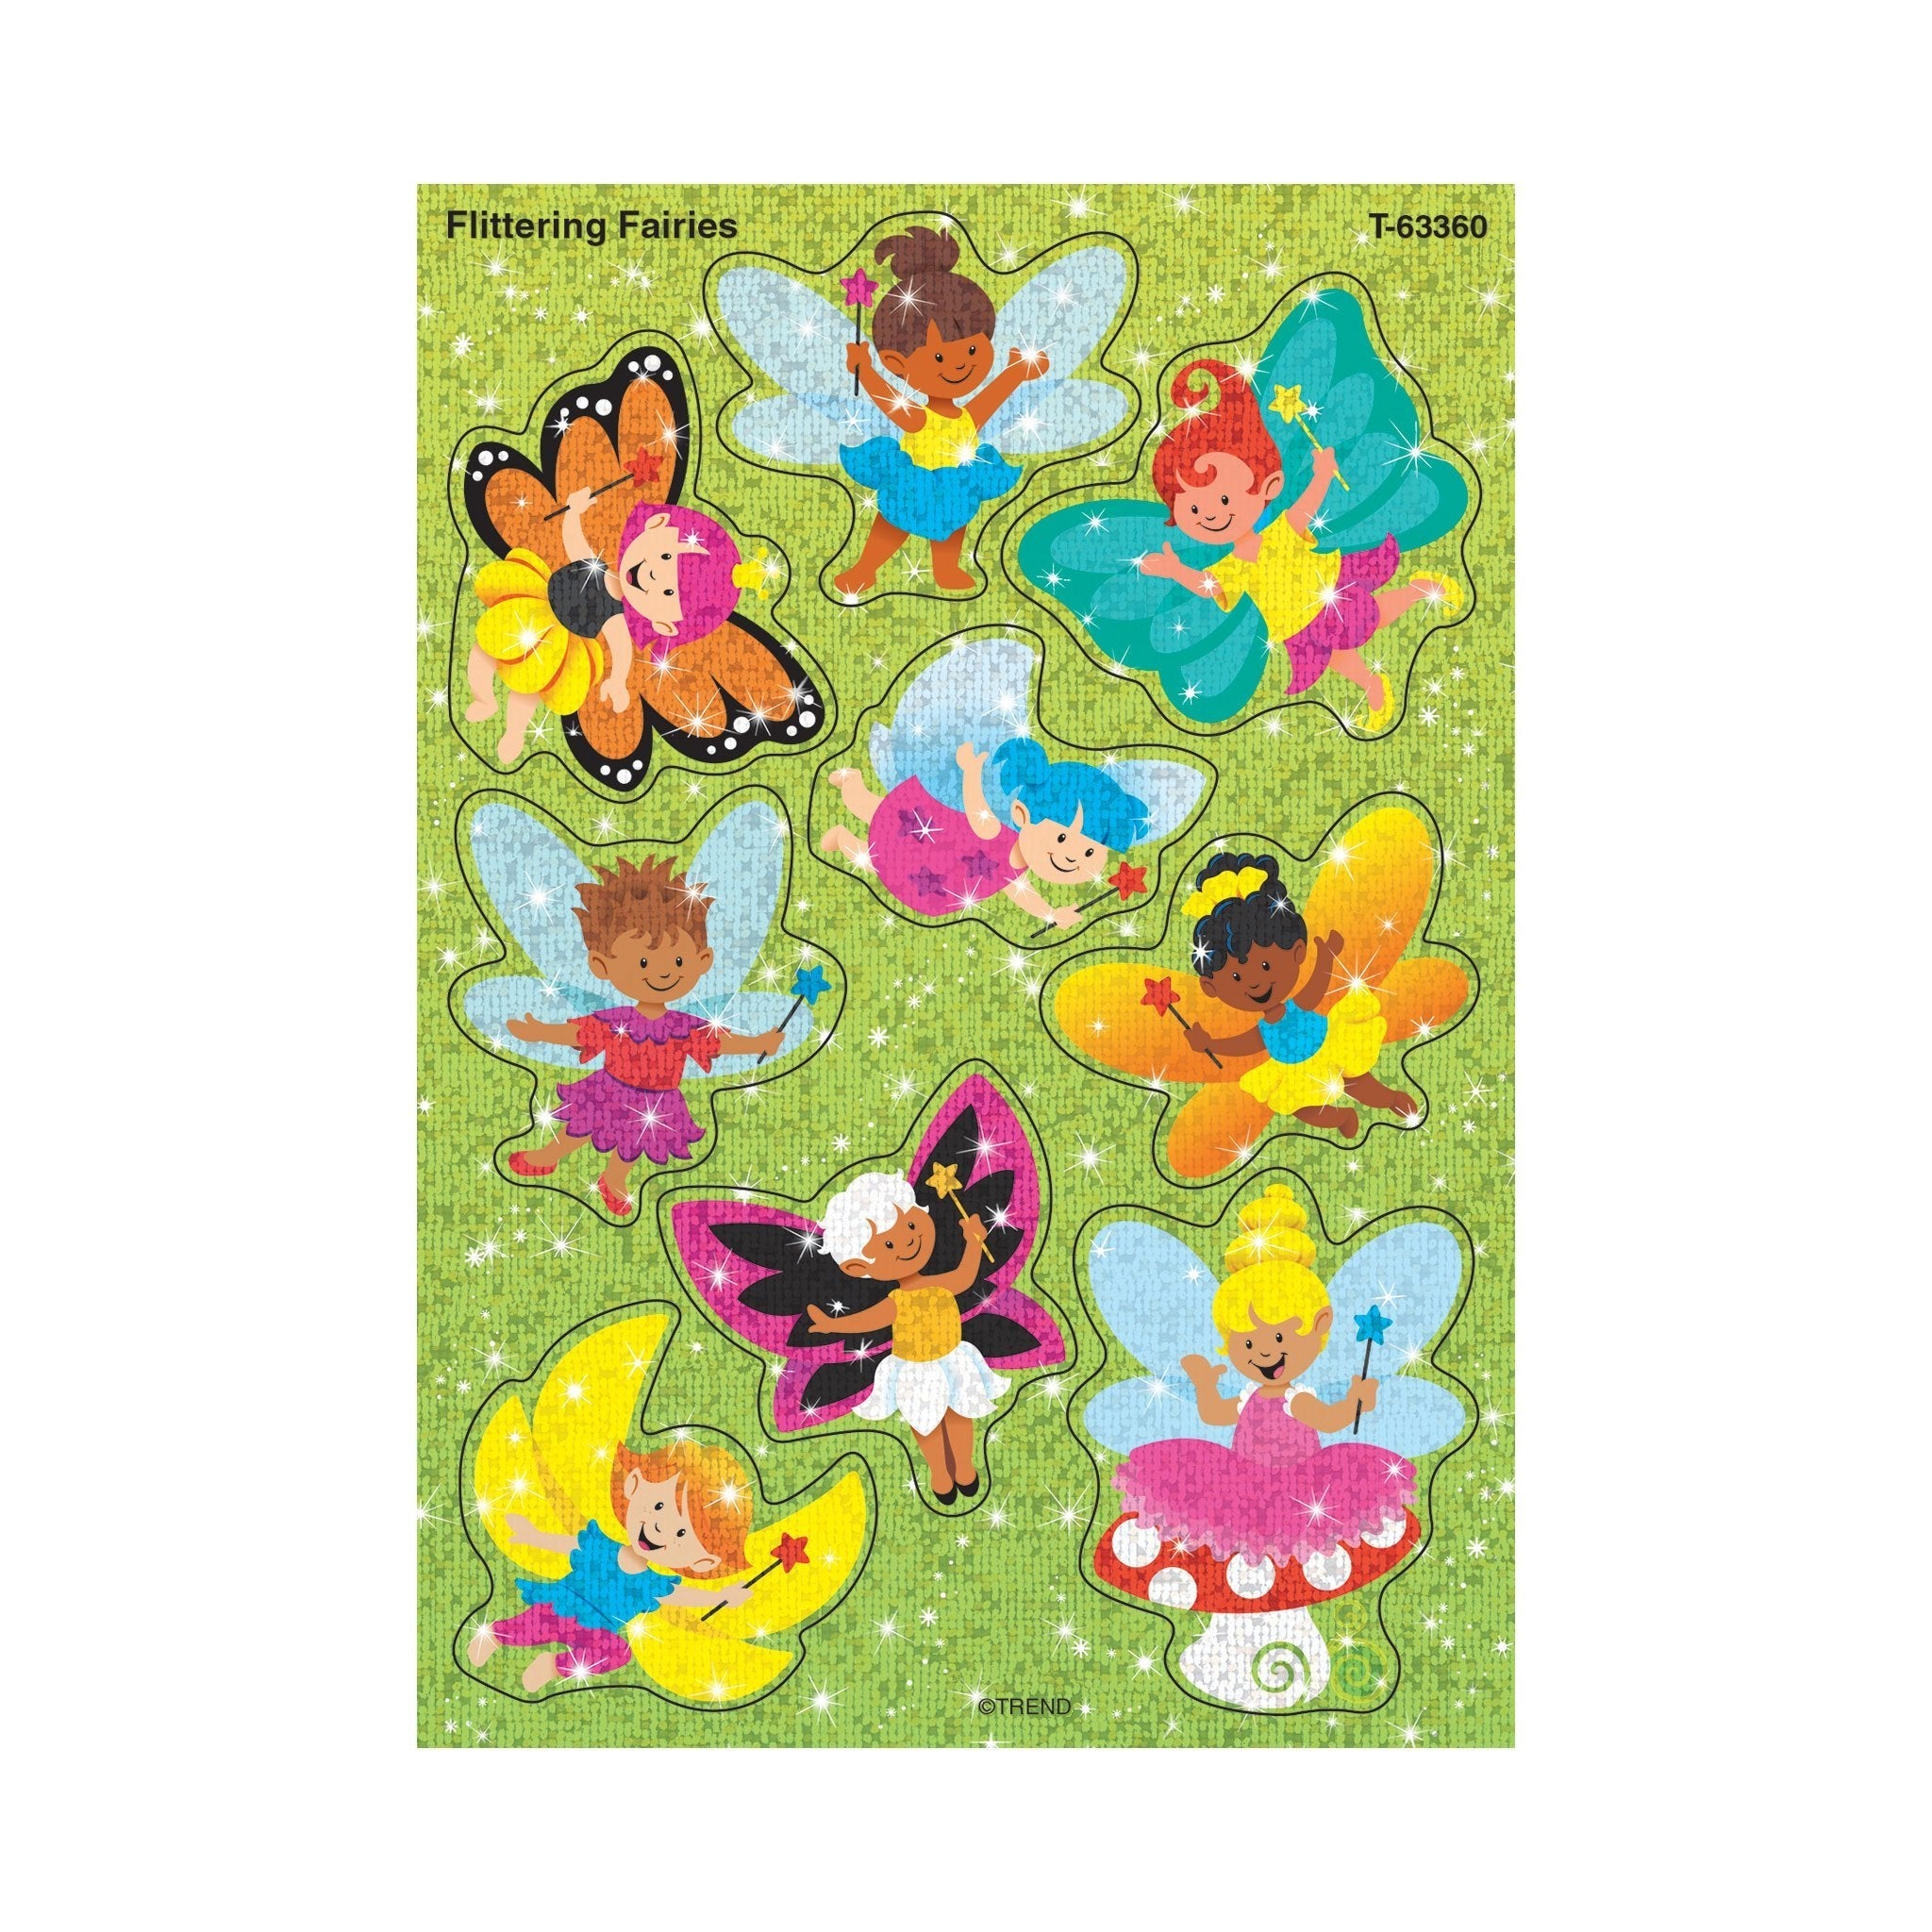 Flittering Fairies Sparkle Stickers®